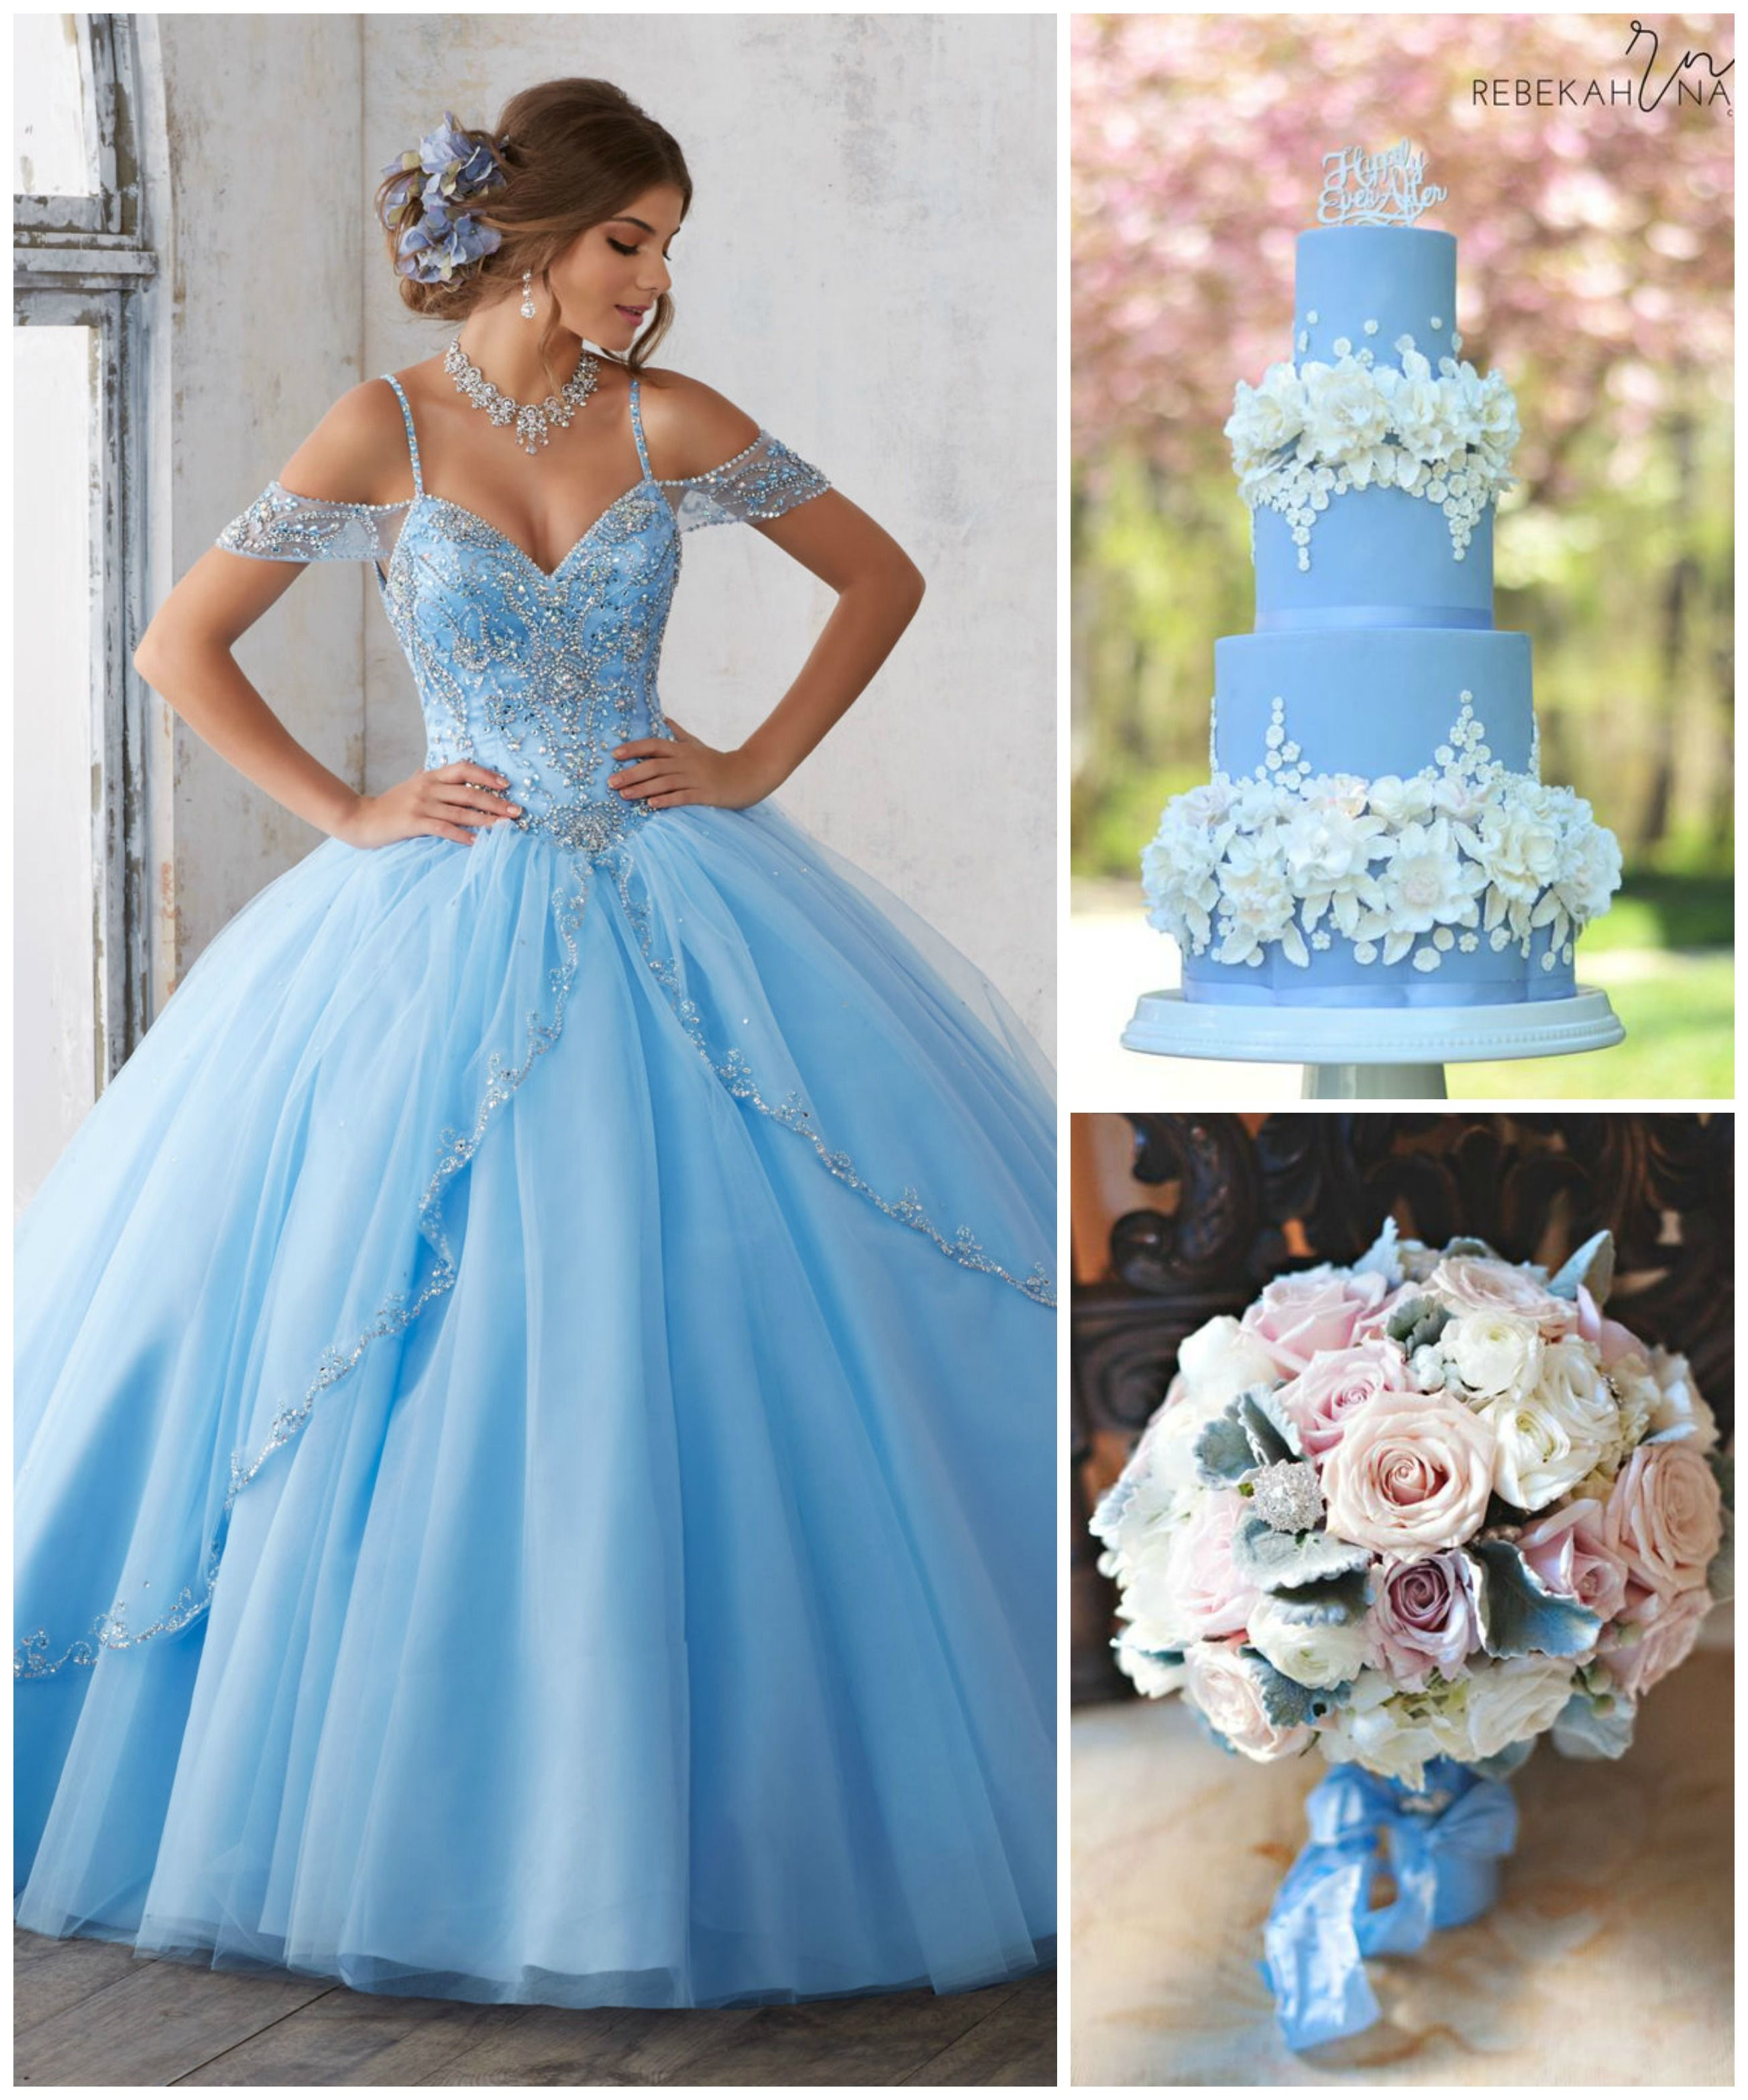 Quince Theme Decorations | Quinceanera ideas, Princess ...